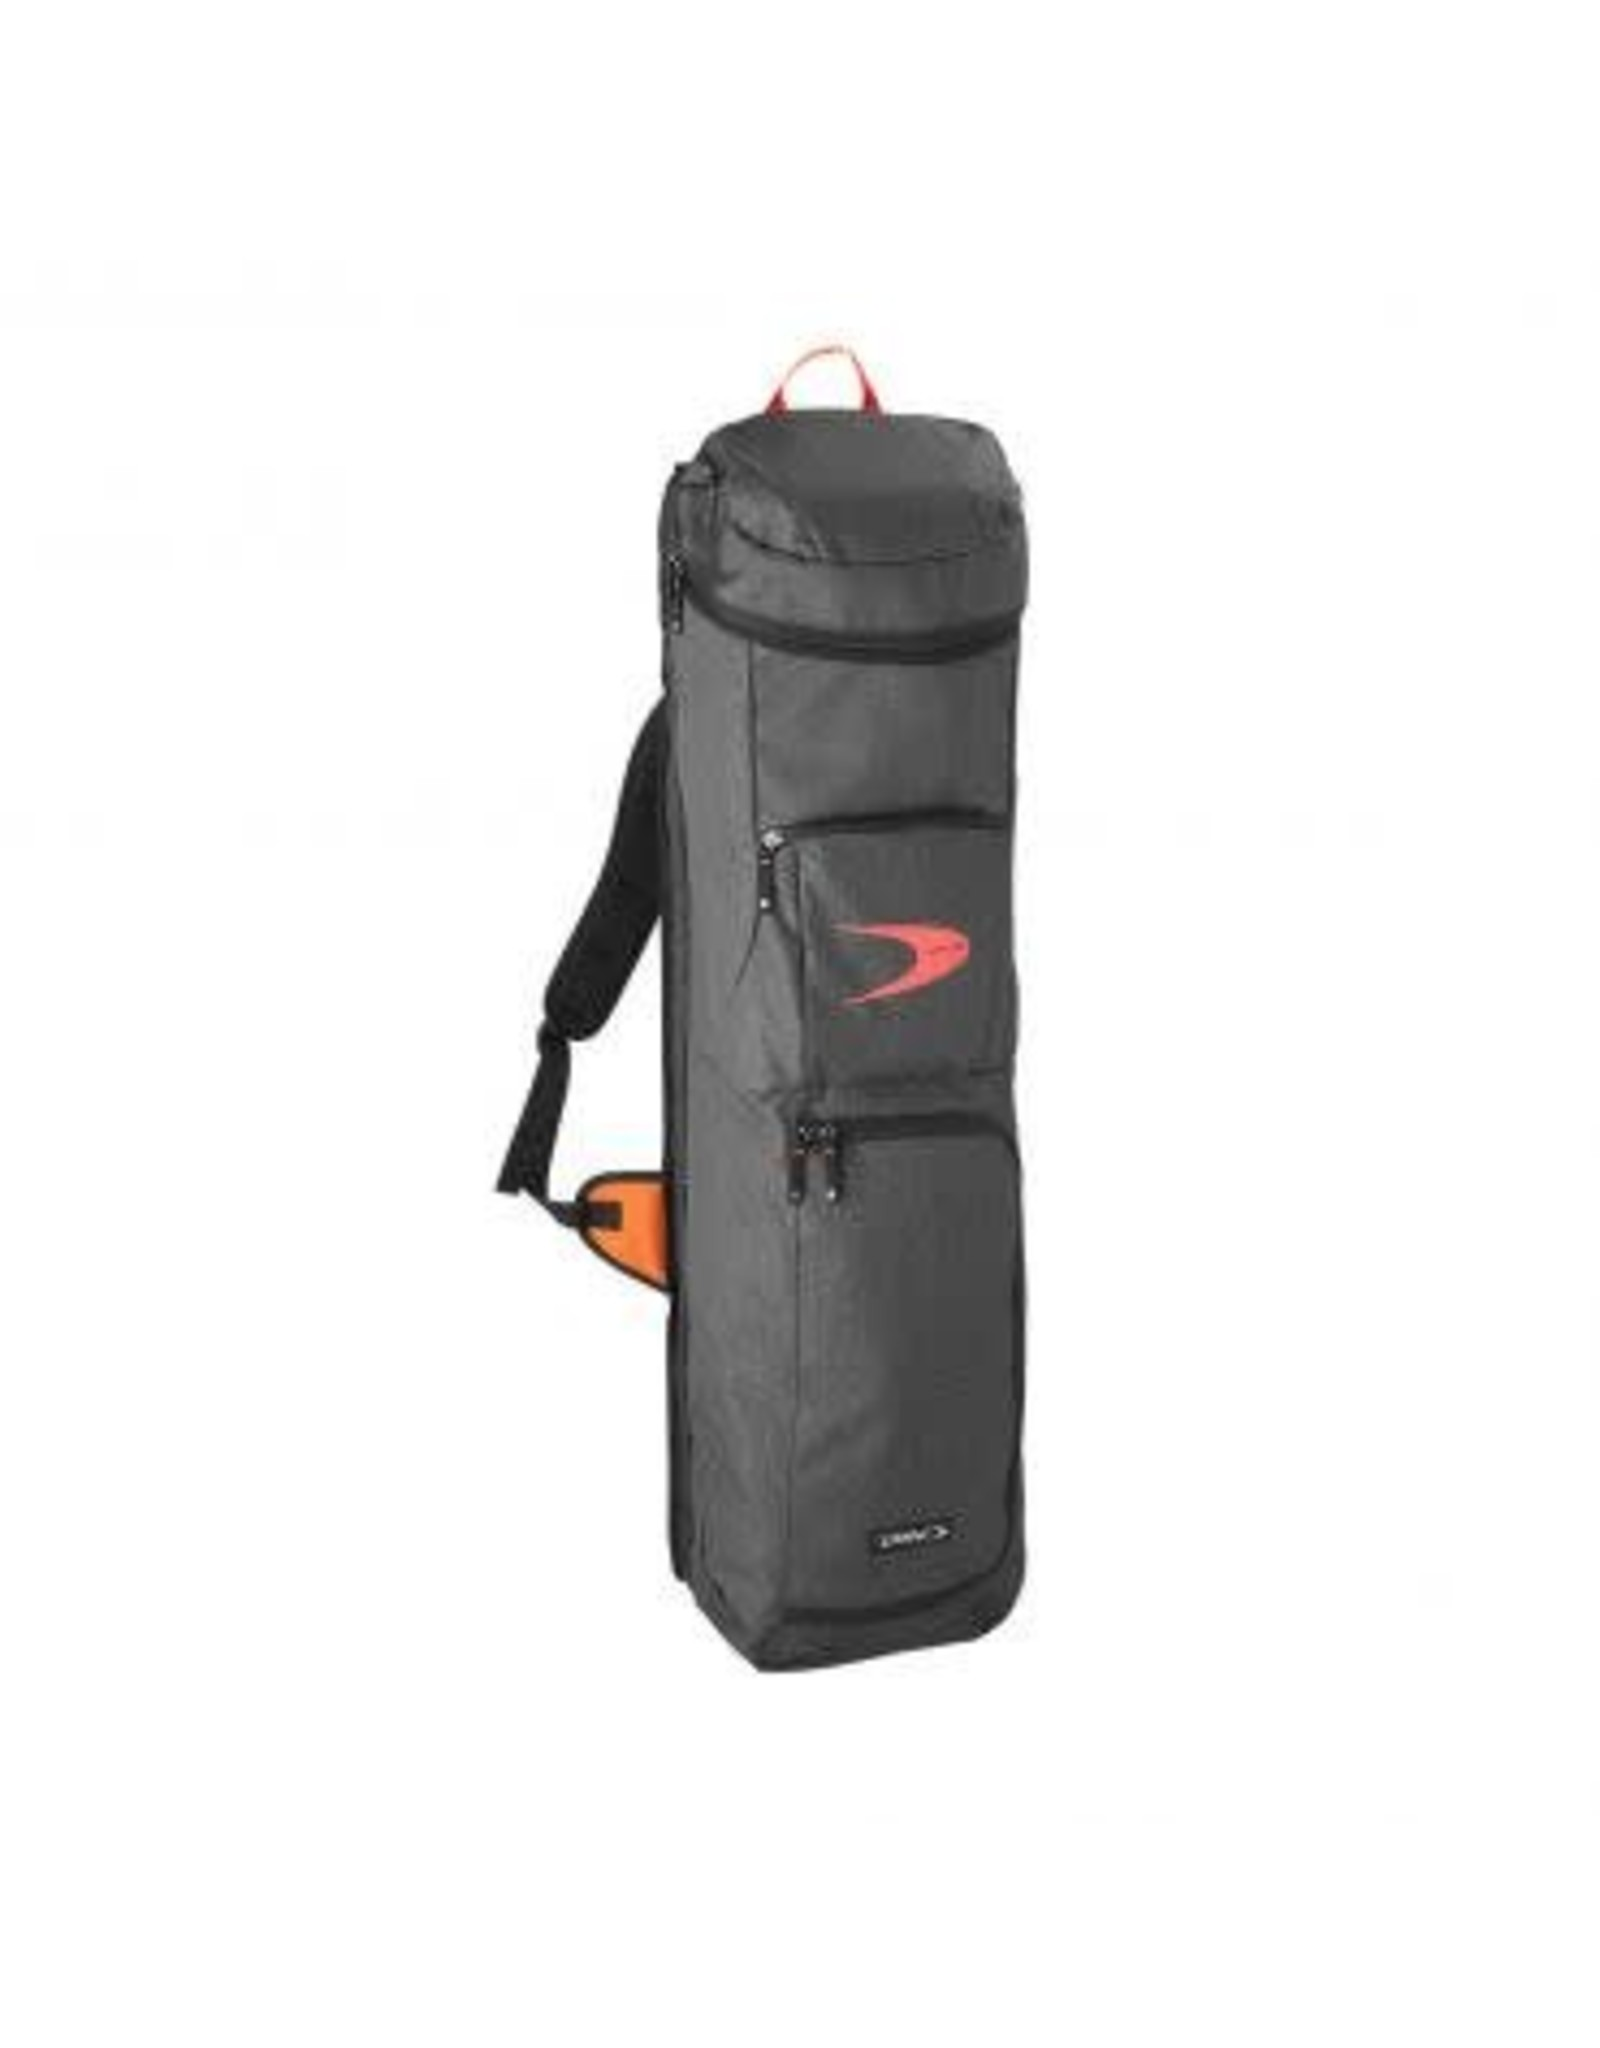 DITA DITA STICKBAG GIANT 18/19